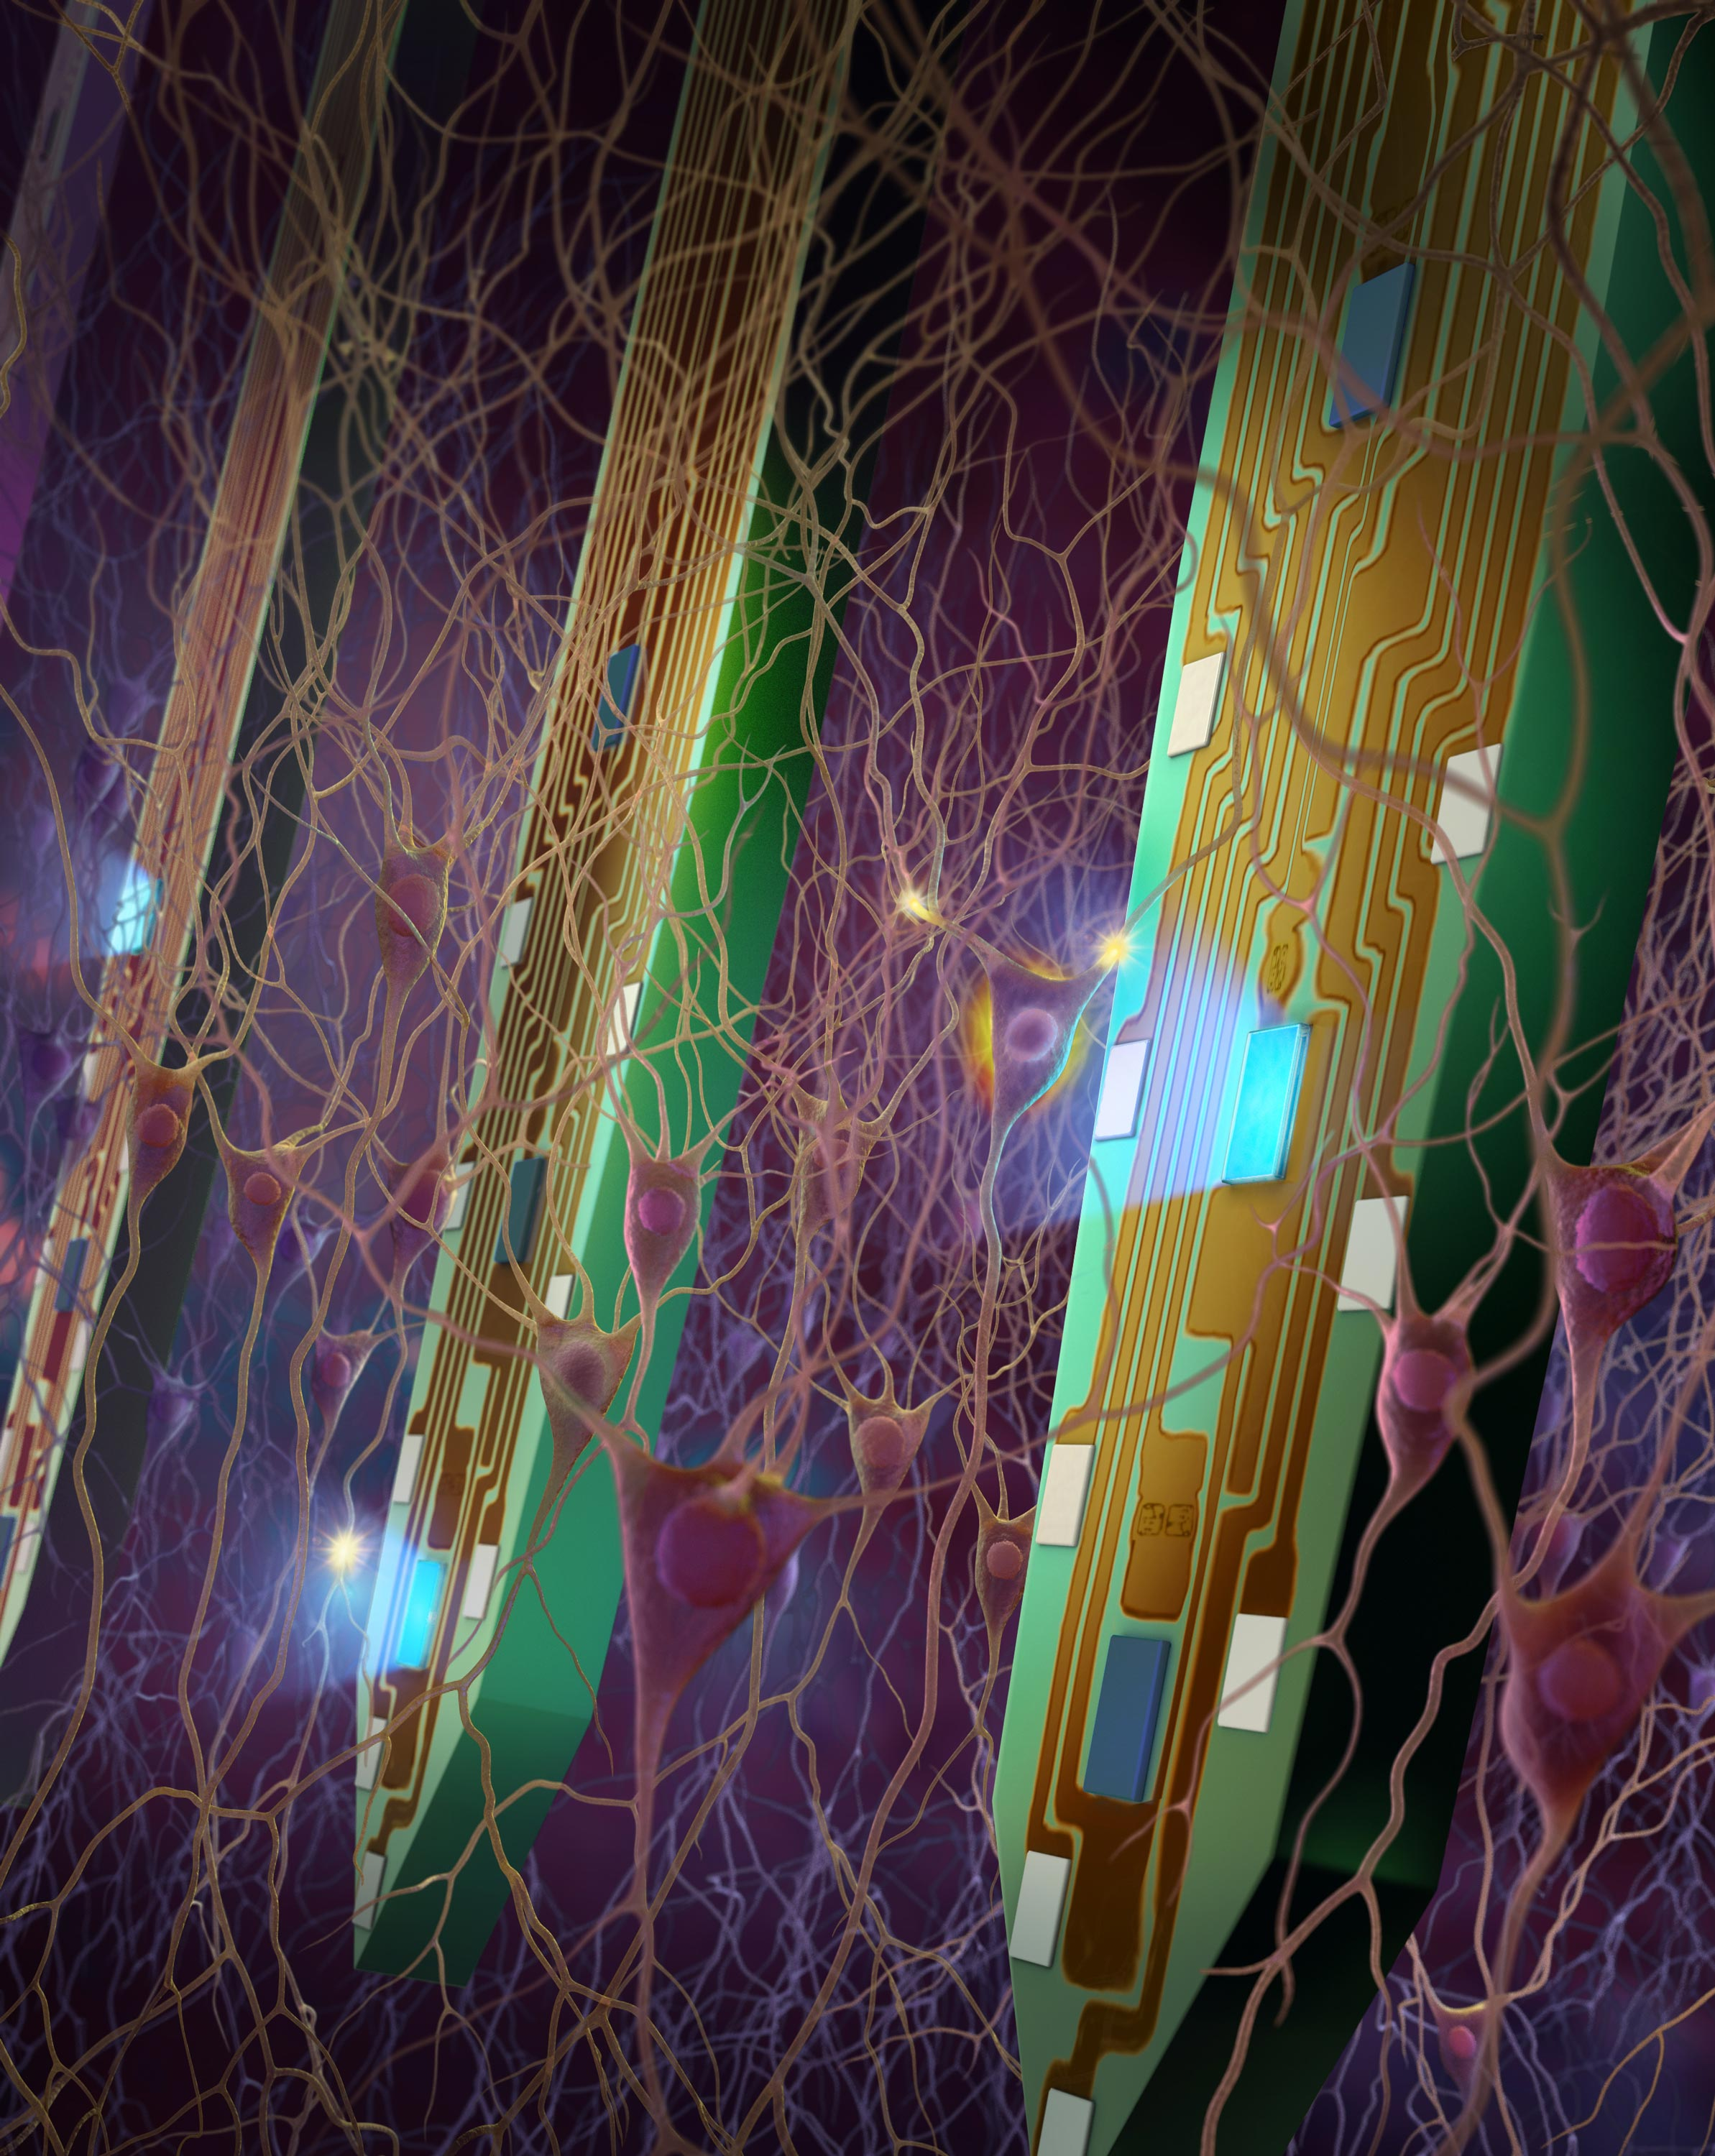 Neural probes developed at the University of Michigan are helping researchers understand the brain's circuitry. The tines of the probe are just under a tenth of a millimeter wide. Equipped with minuscule LED lights and electrodes, each tine can stimulate and measure about a hundred individual neurons. Image credit: Fan Wu